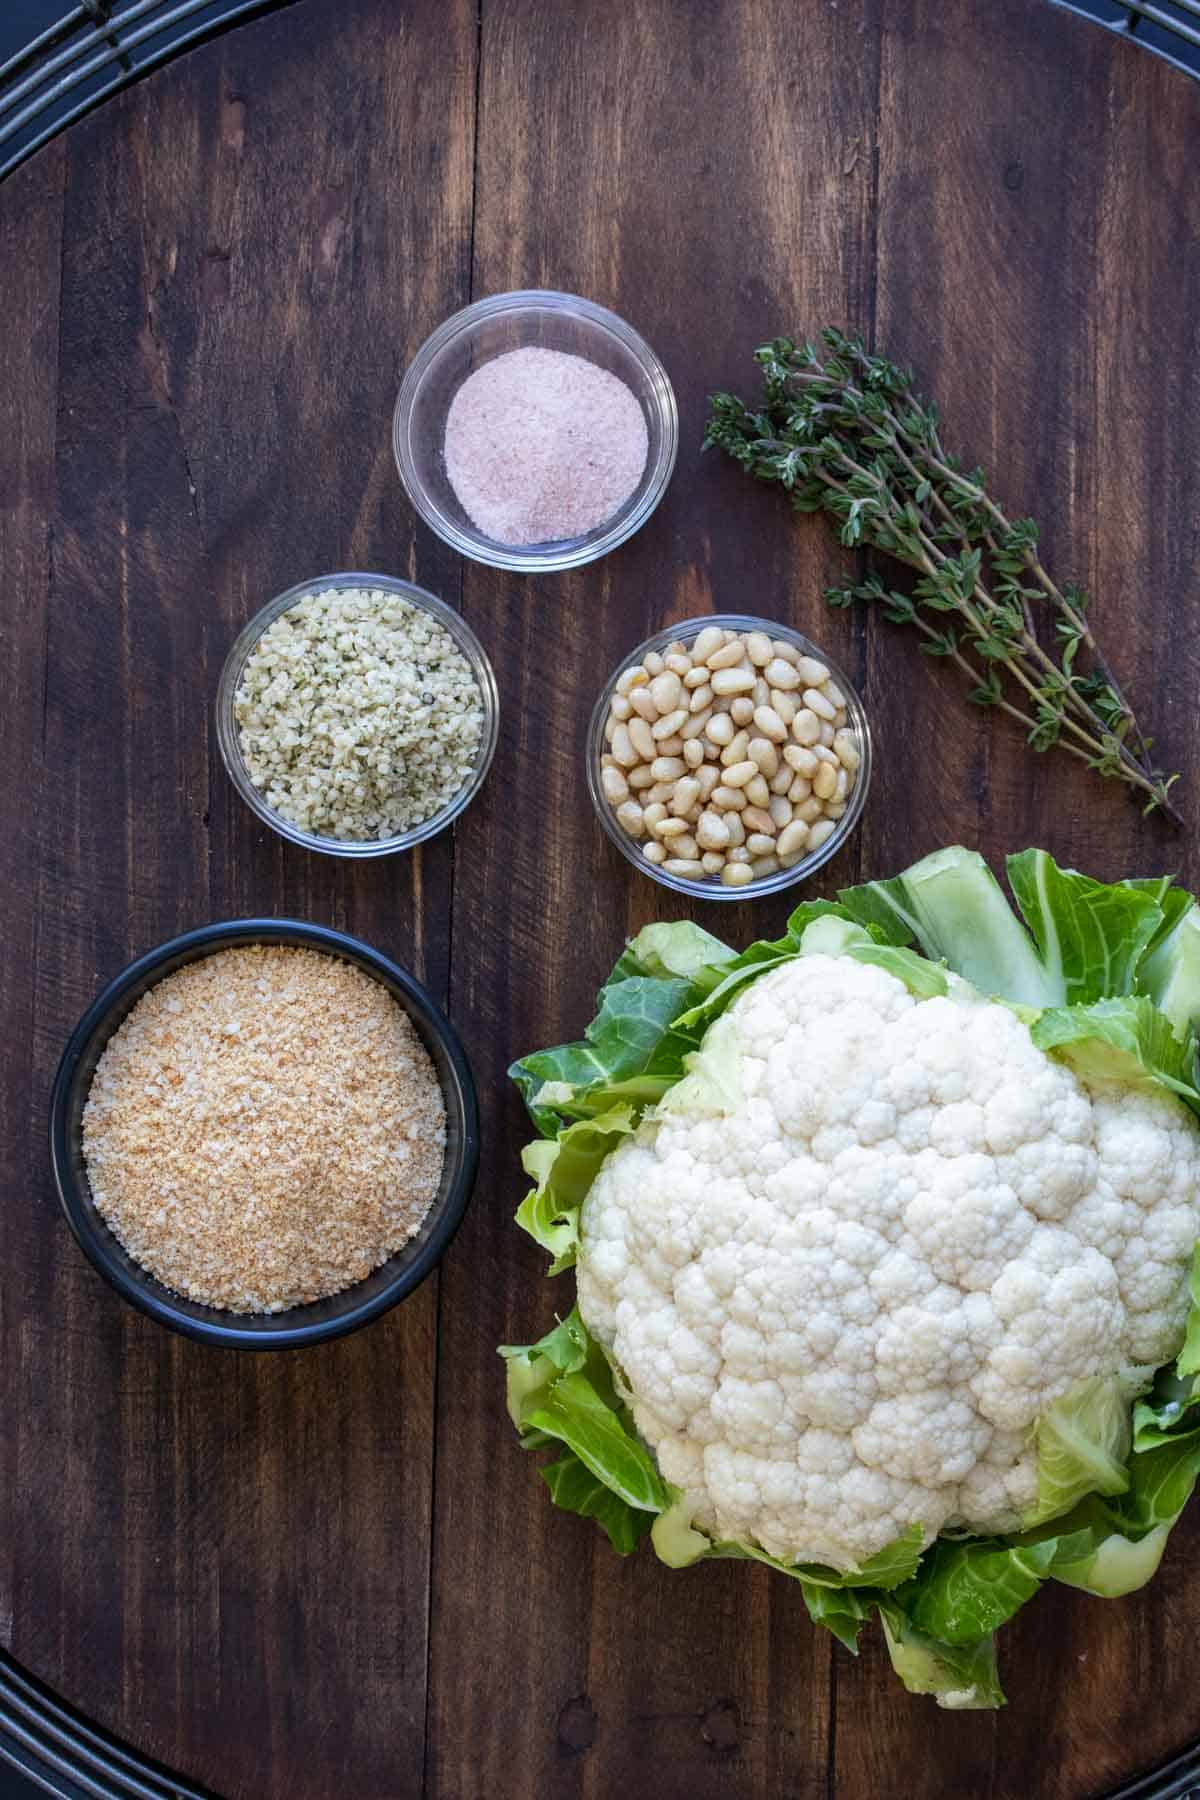 Cauliflower, bread crumbs, hemp seeds, pine nuts and salt on a wooden surface